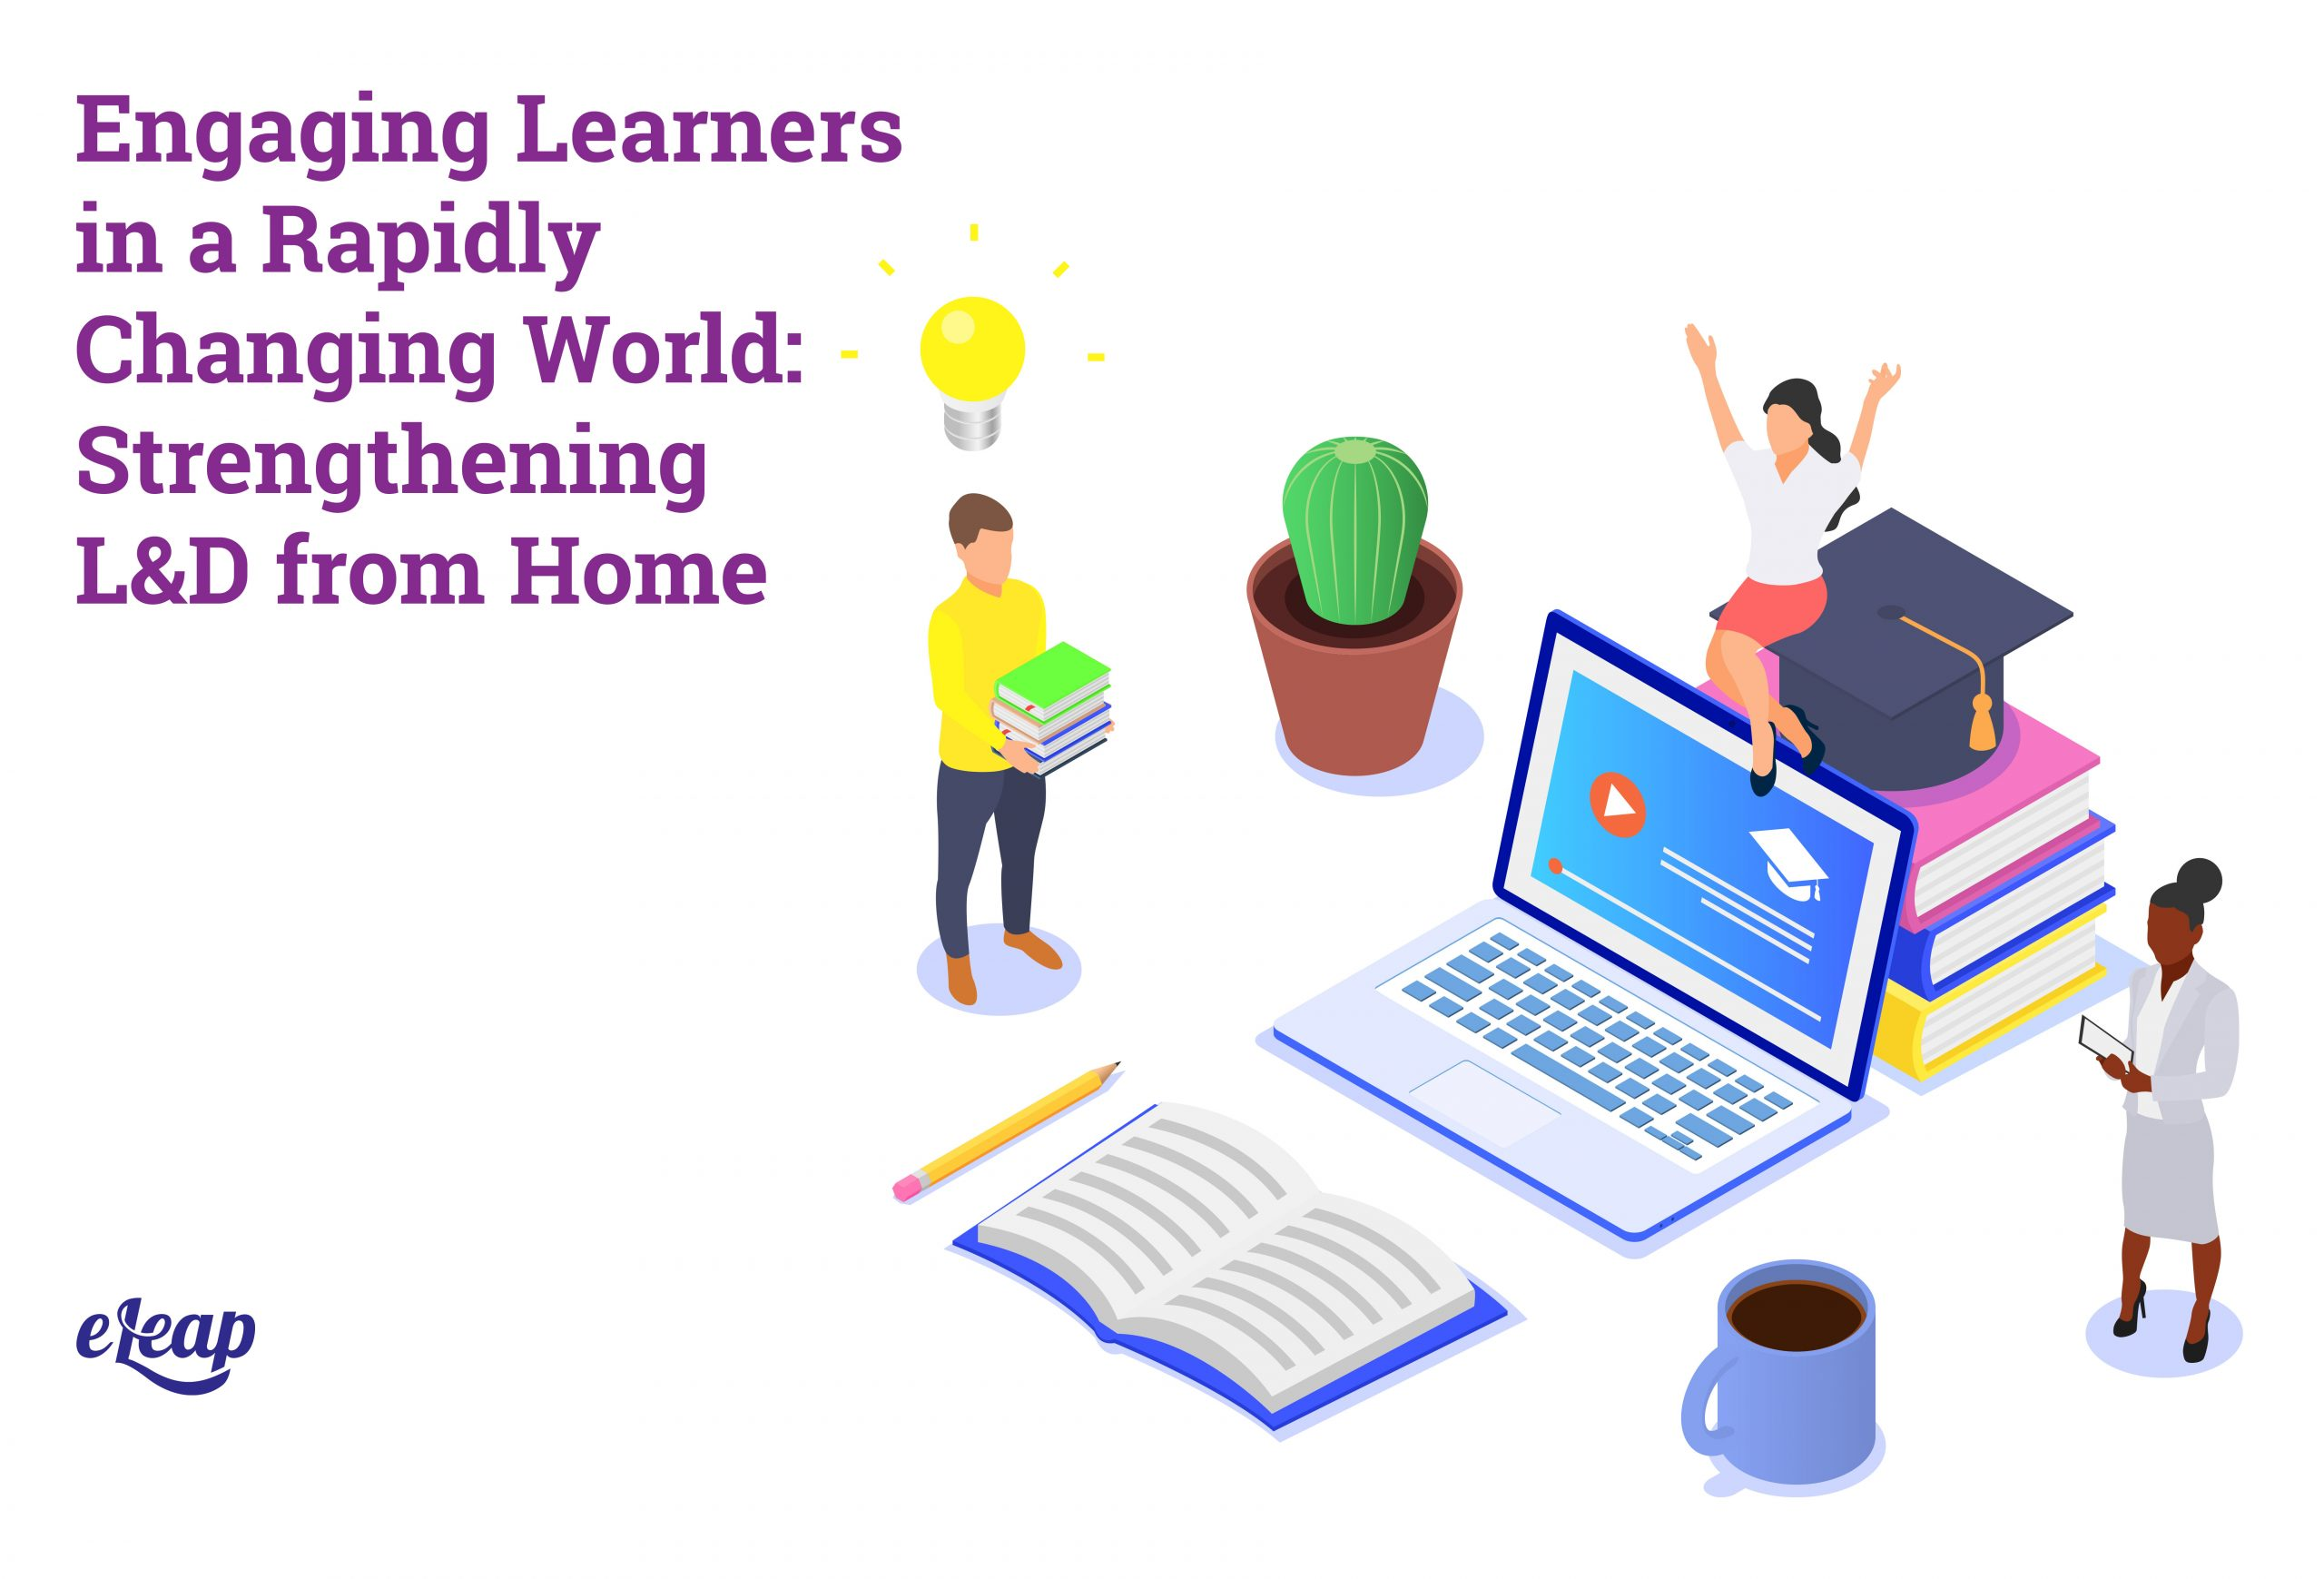 Engaging Learners in a Rapidly Changing World: Strengthening L&D from Home